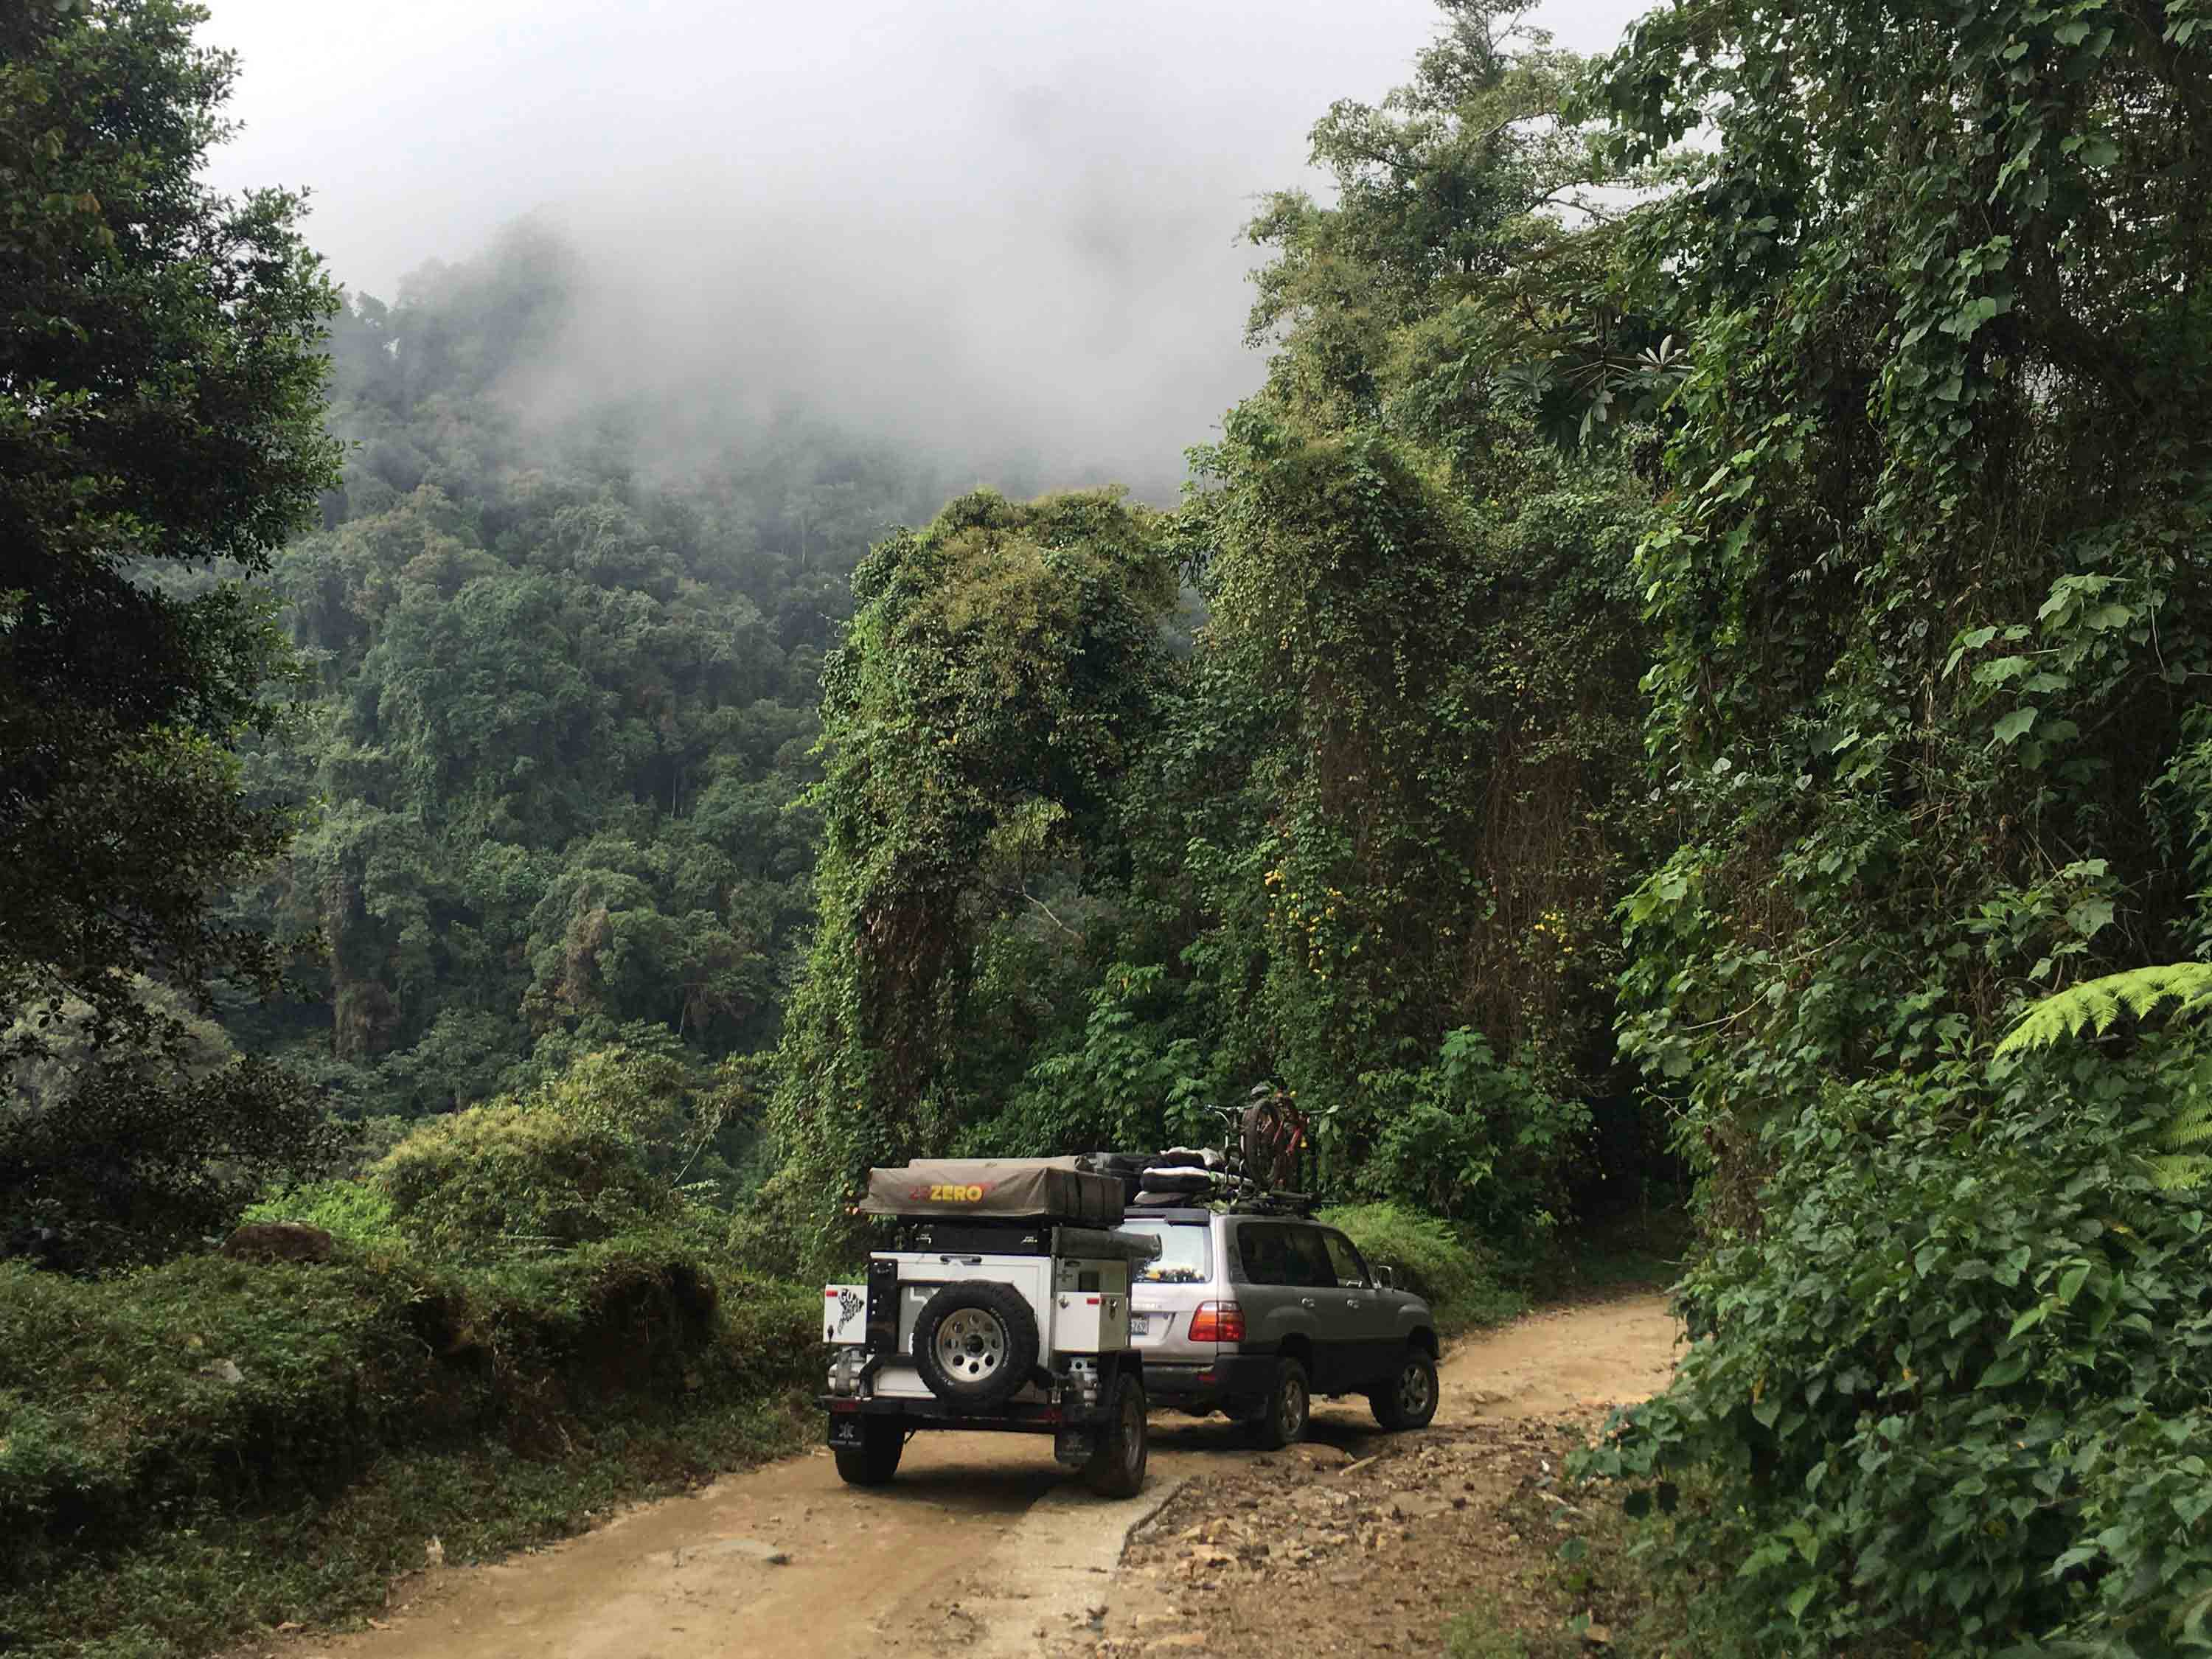 Driving through a dense jungle on a dirt path